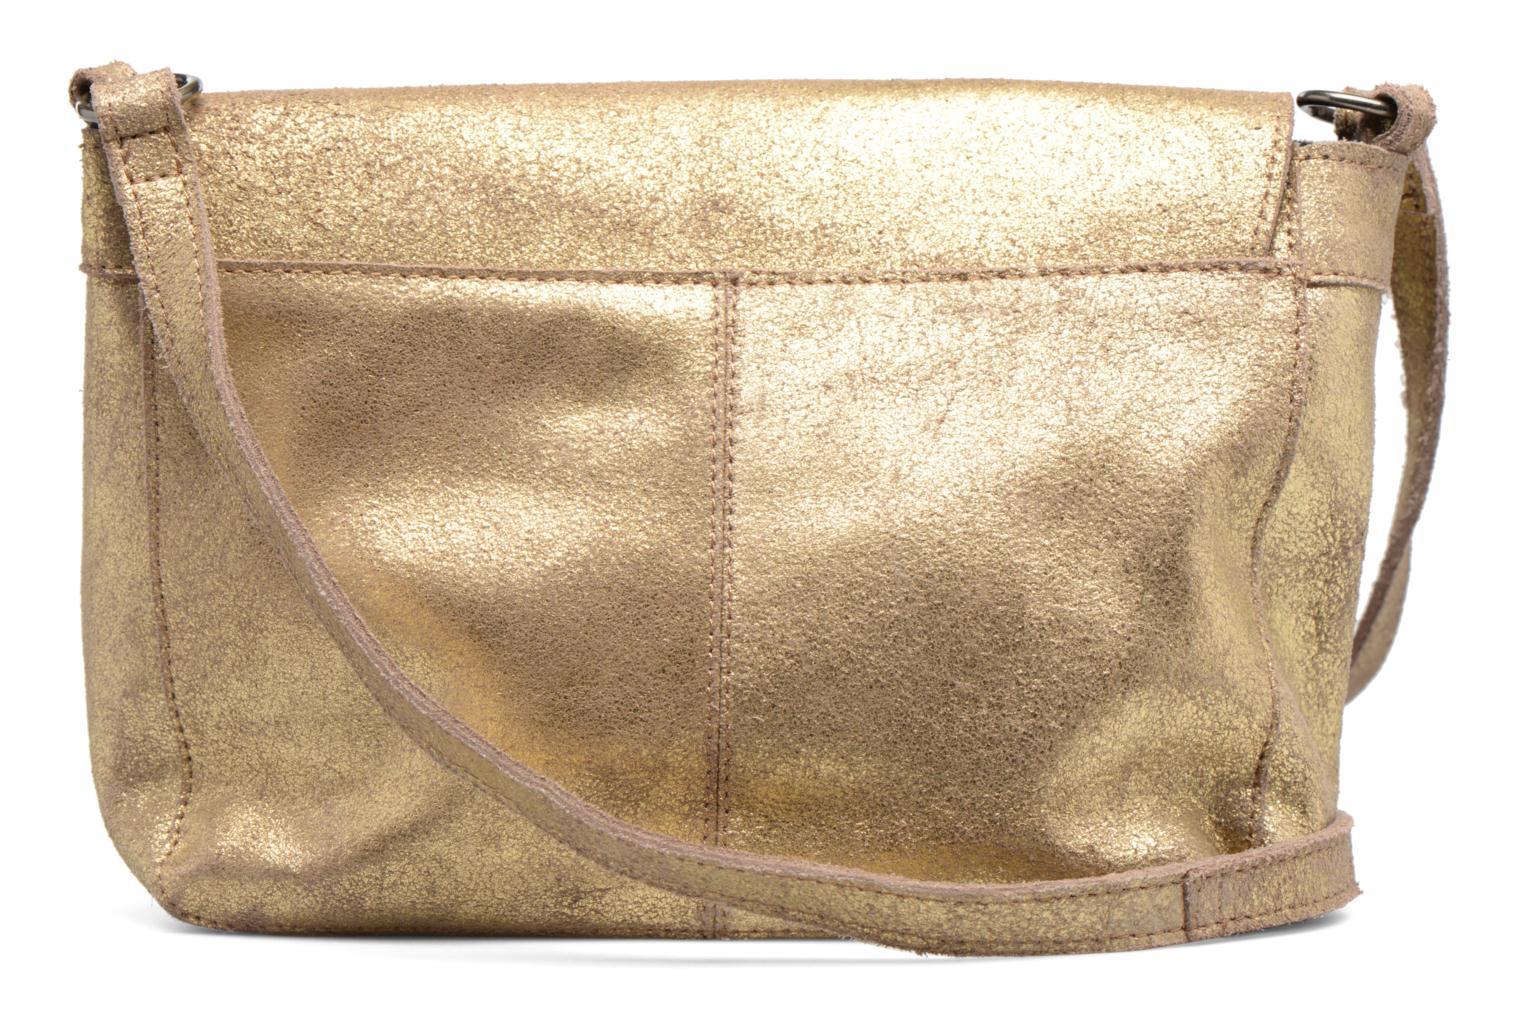 Handtassen Pieces Musta Leather Crossover bag Goud en brons voorkant